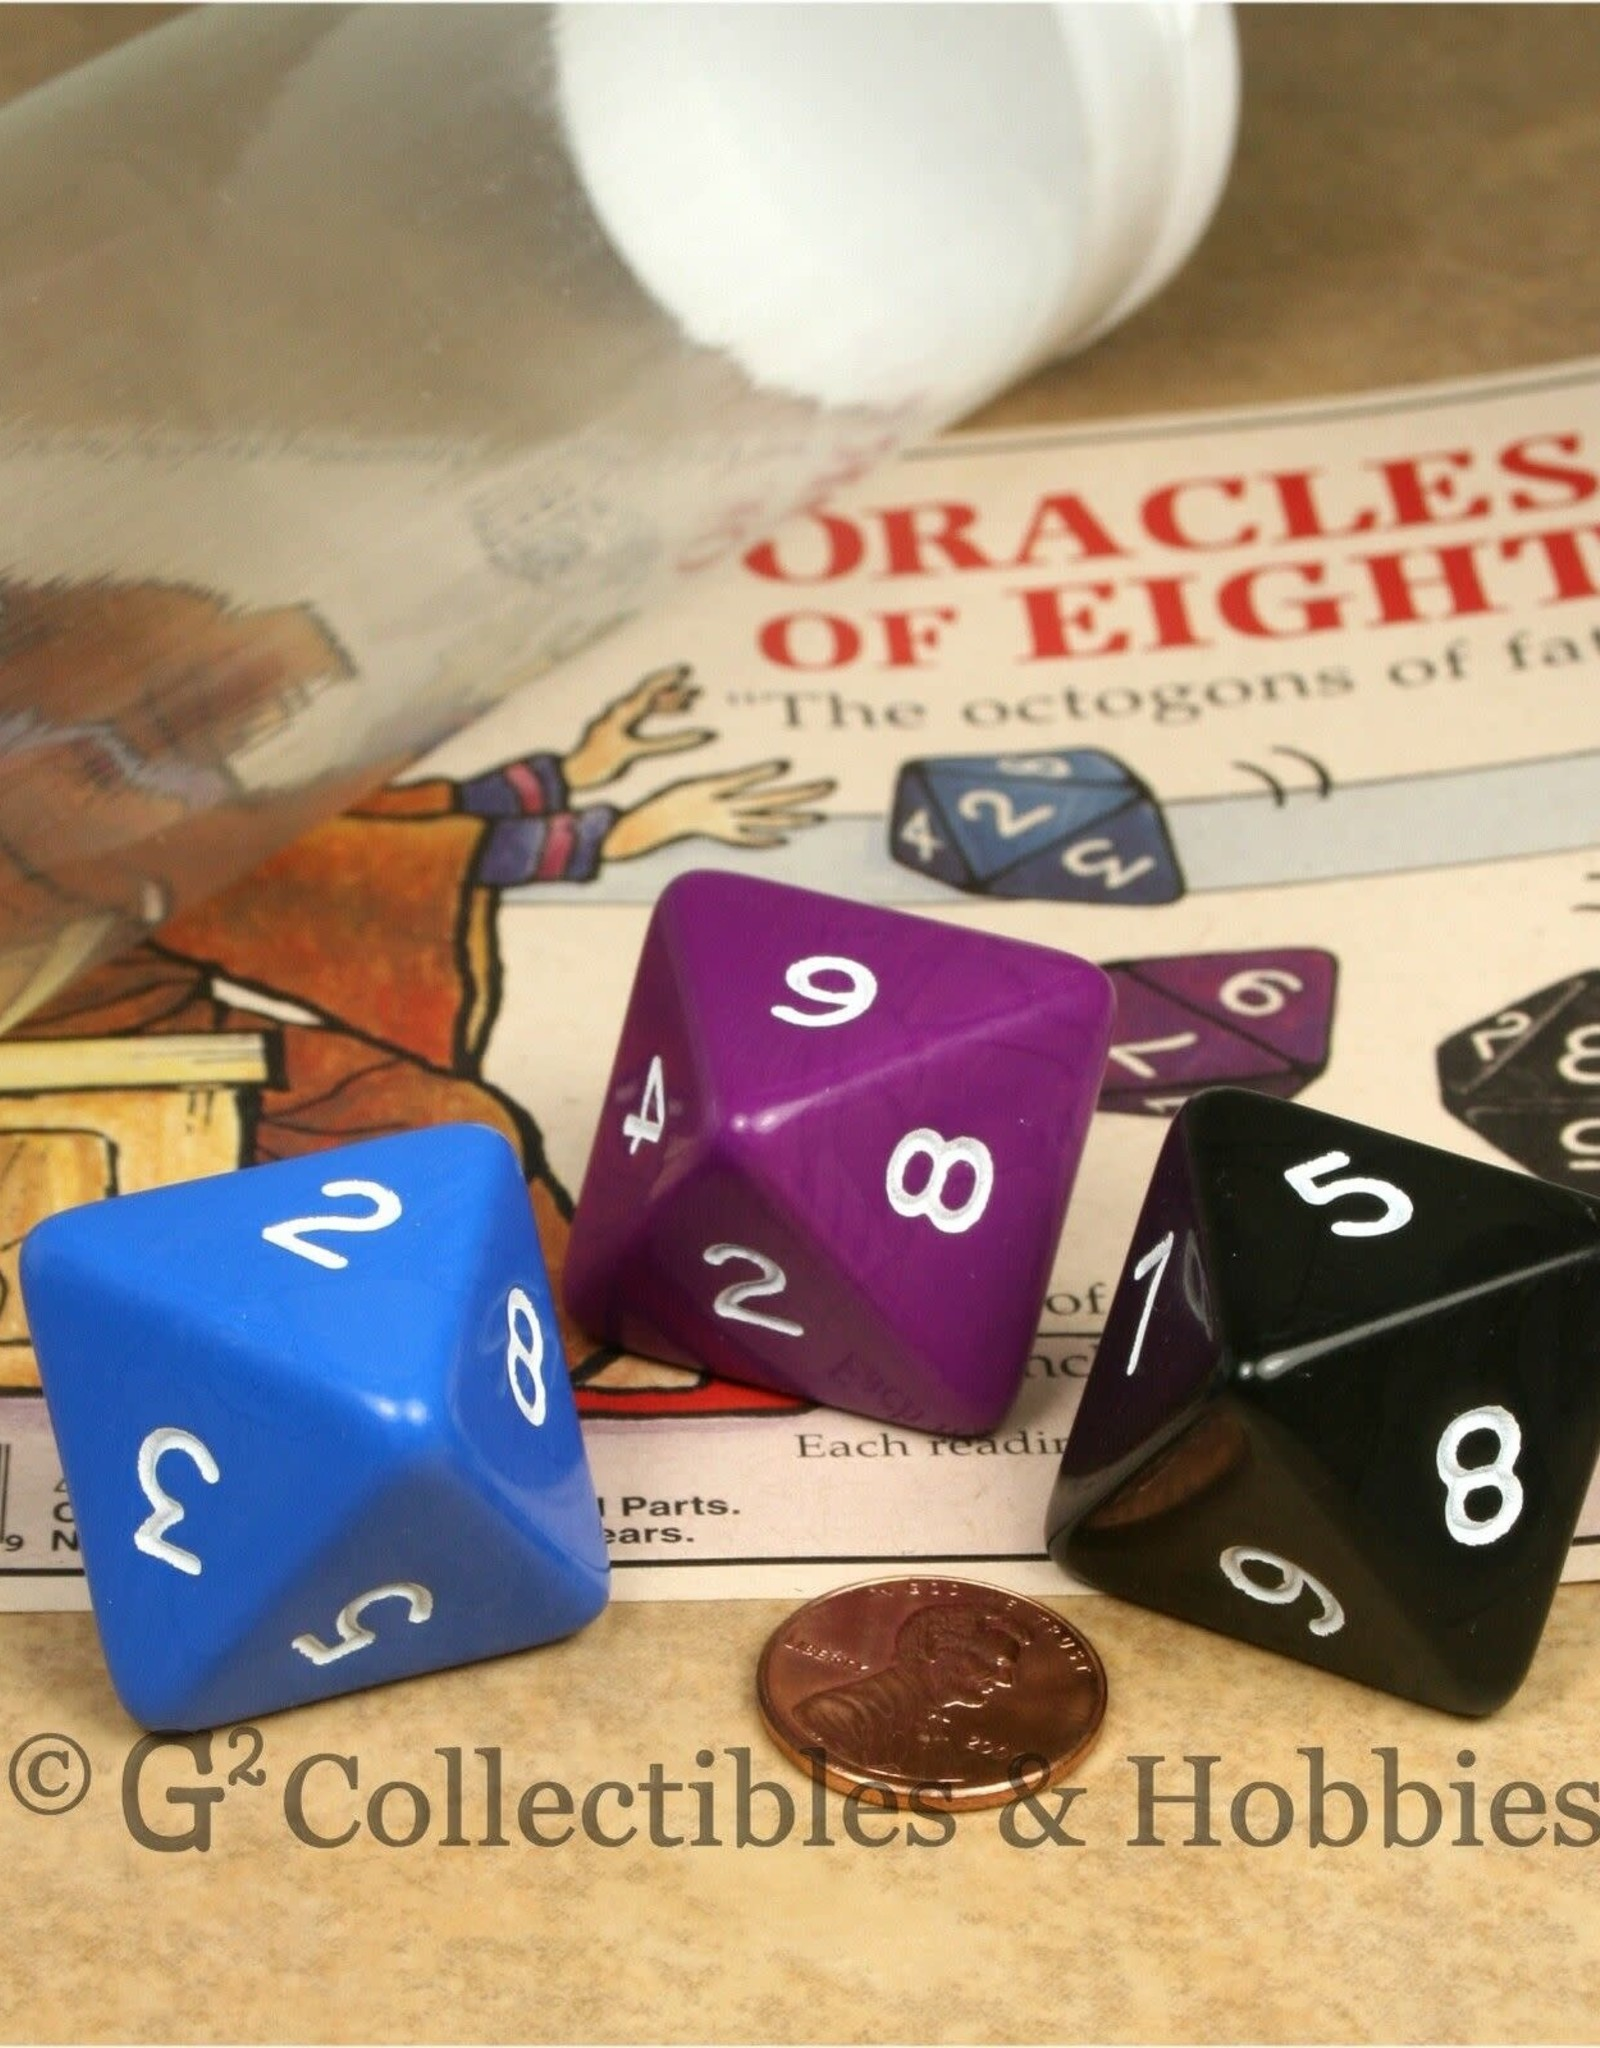 Koplow Dice Koplow ORACLES OF 8 READINGS Dice Game